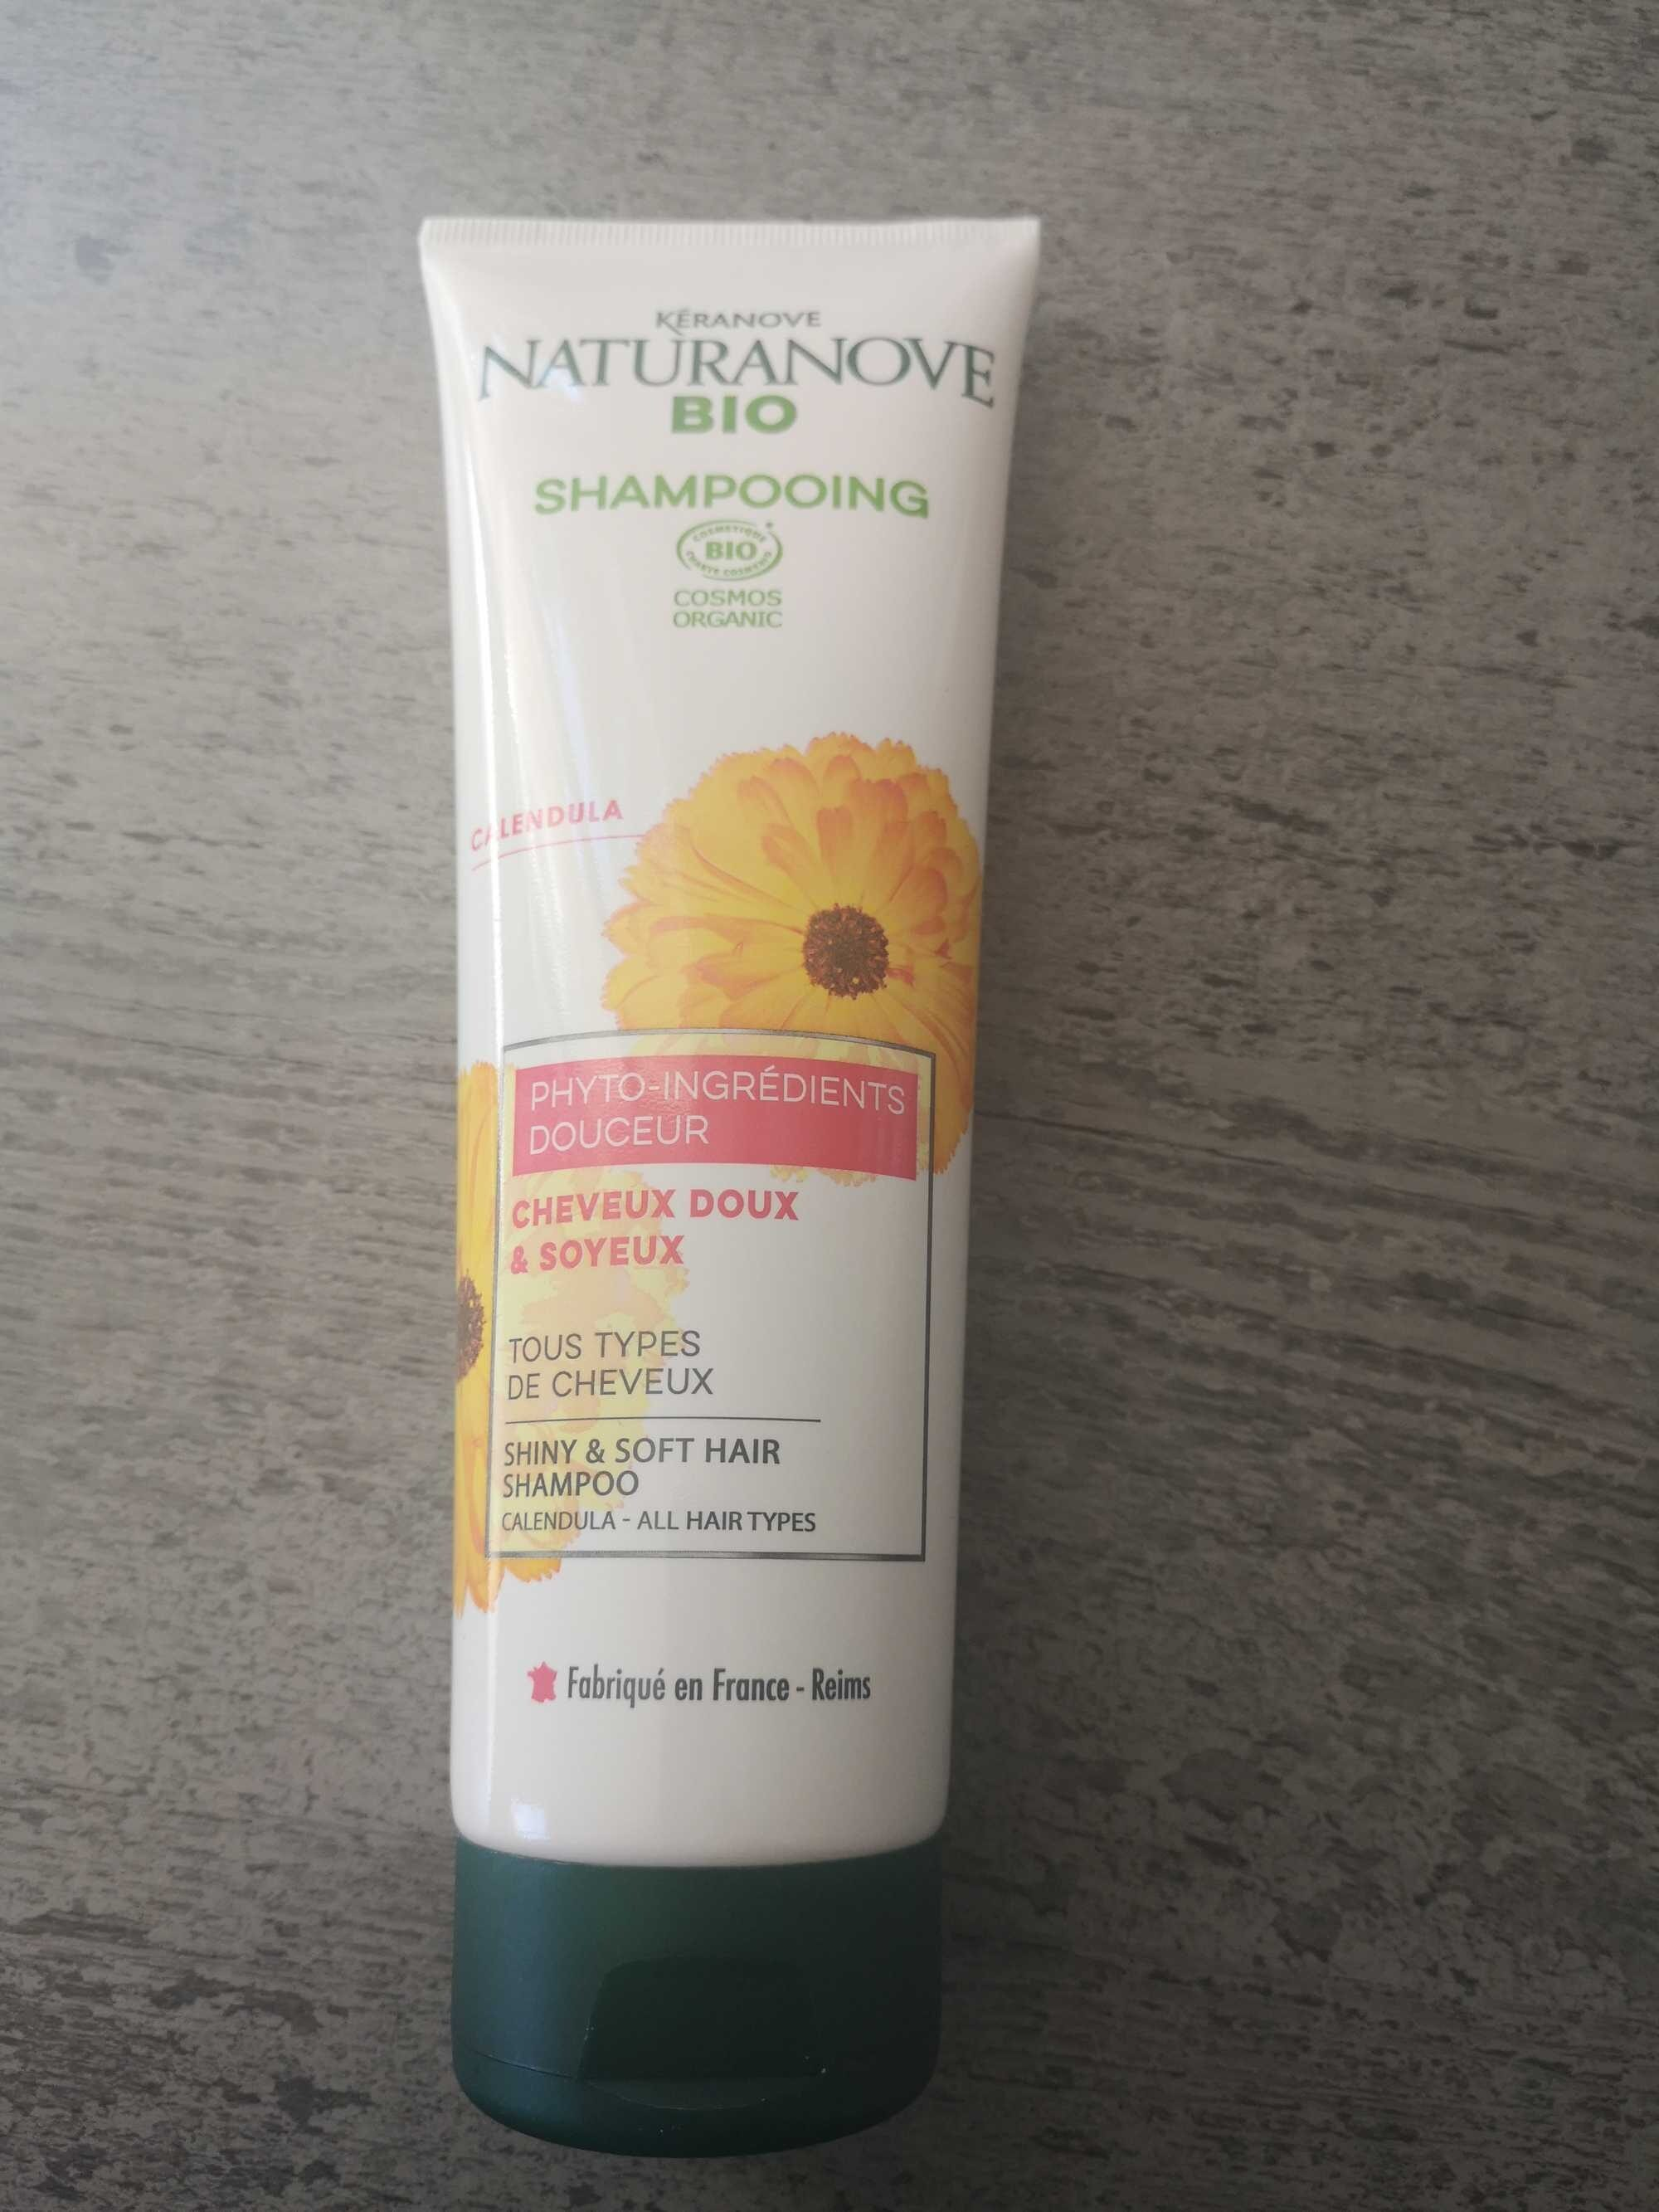 Naturanove - Product